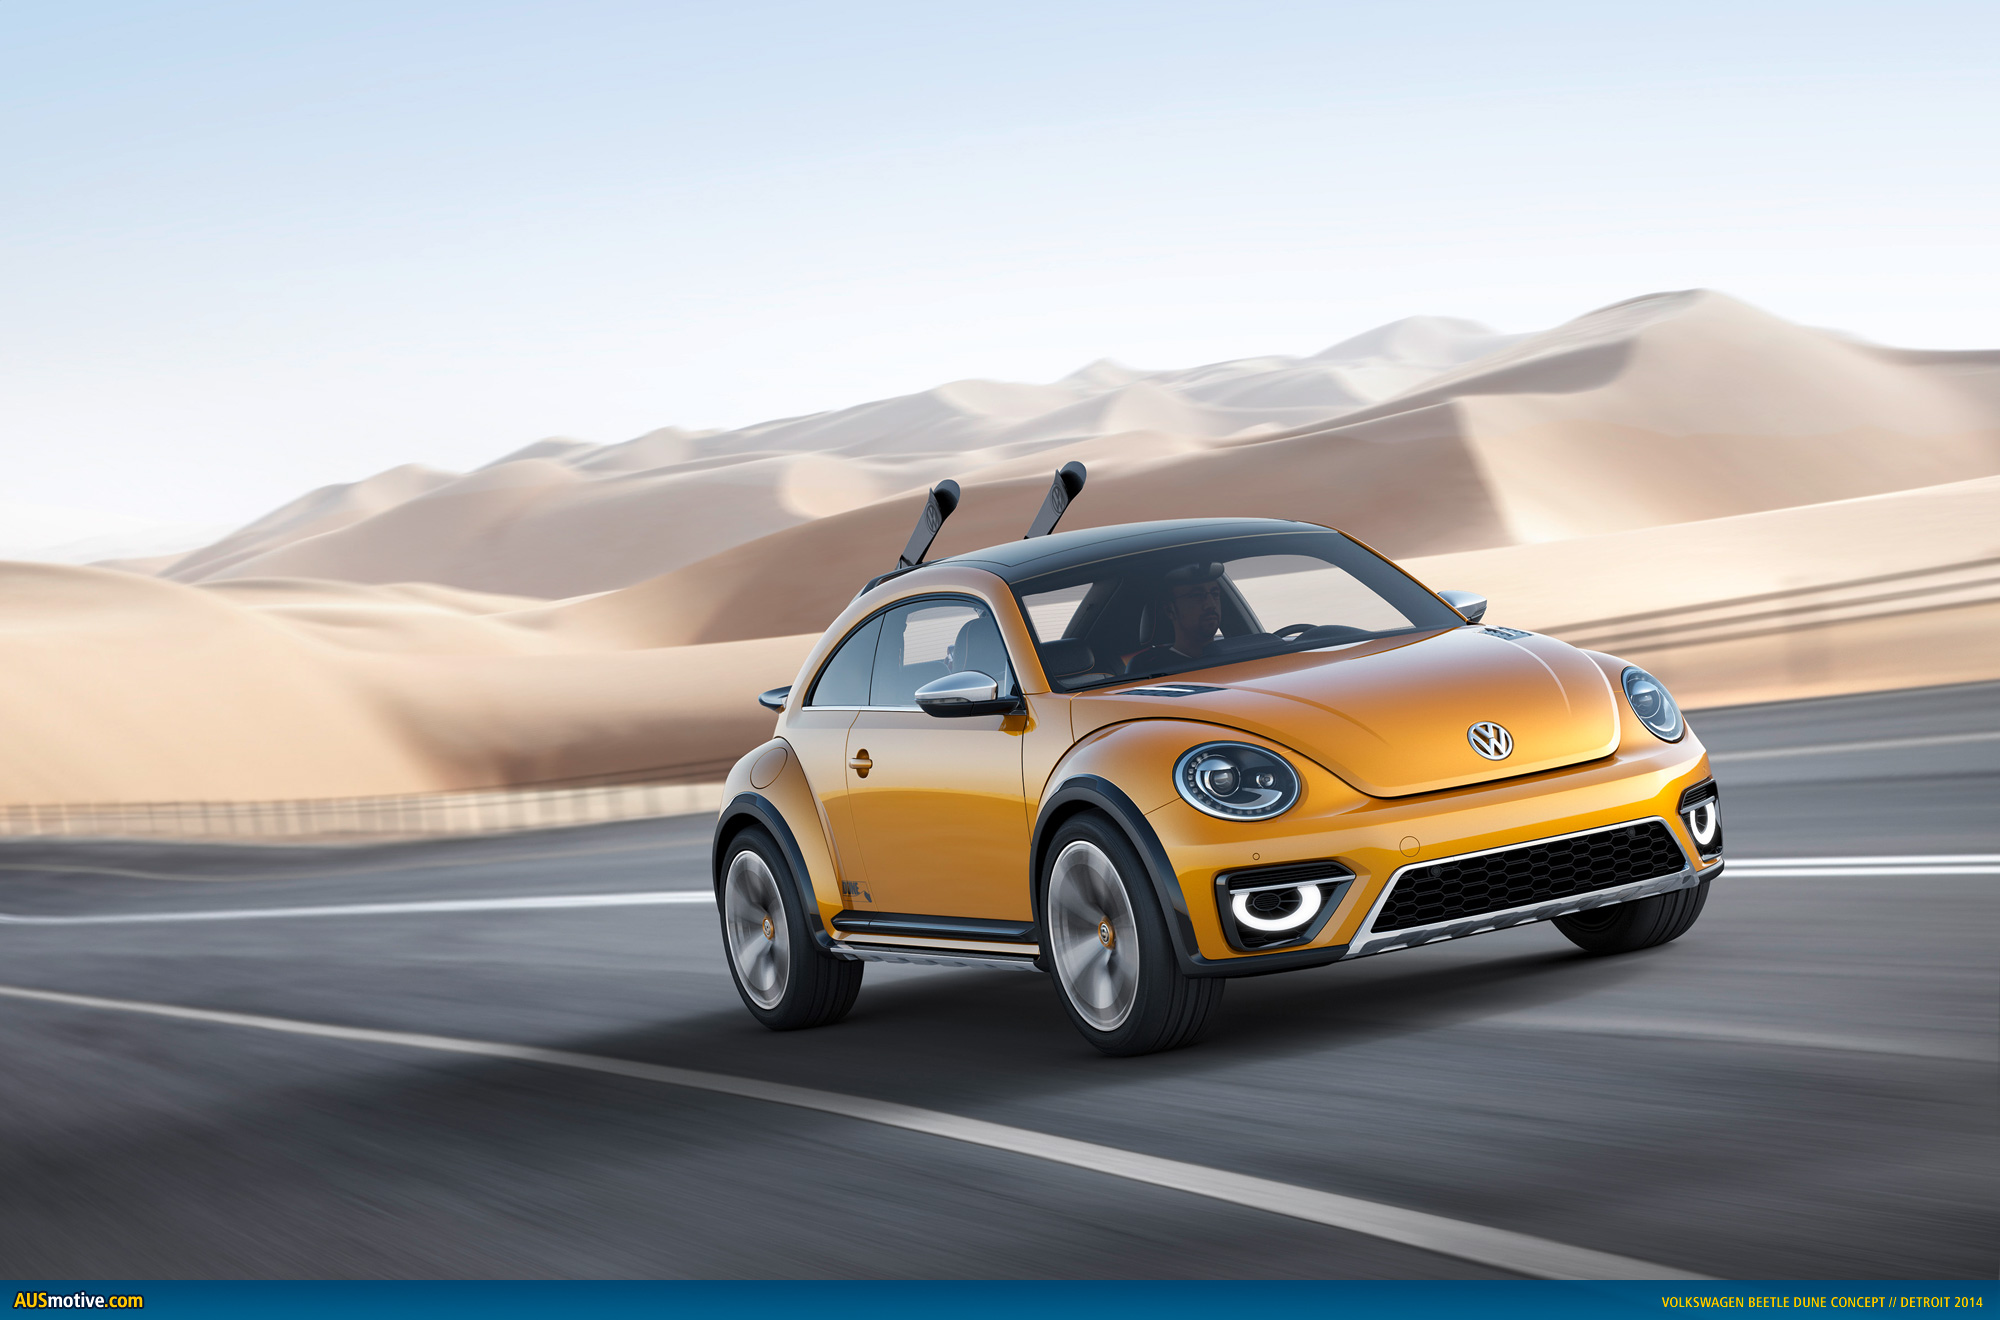 2014 Volkswagen Beetle Dune Concept photo - 2